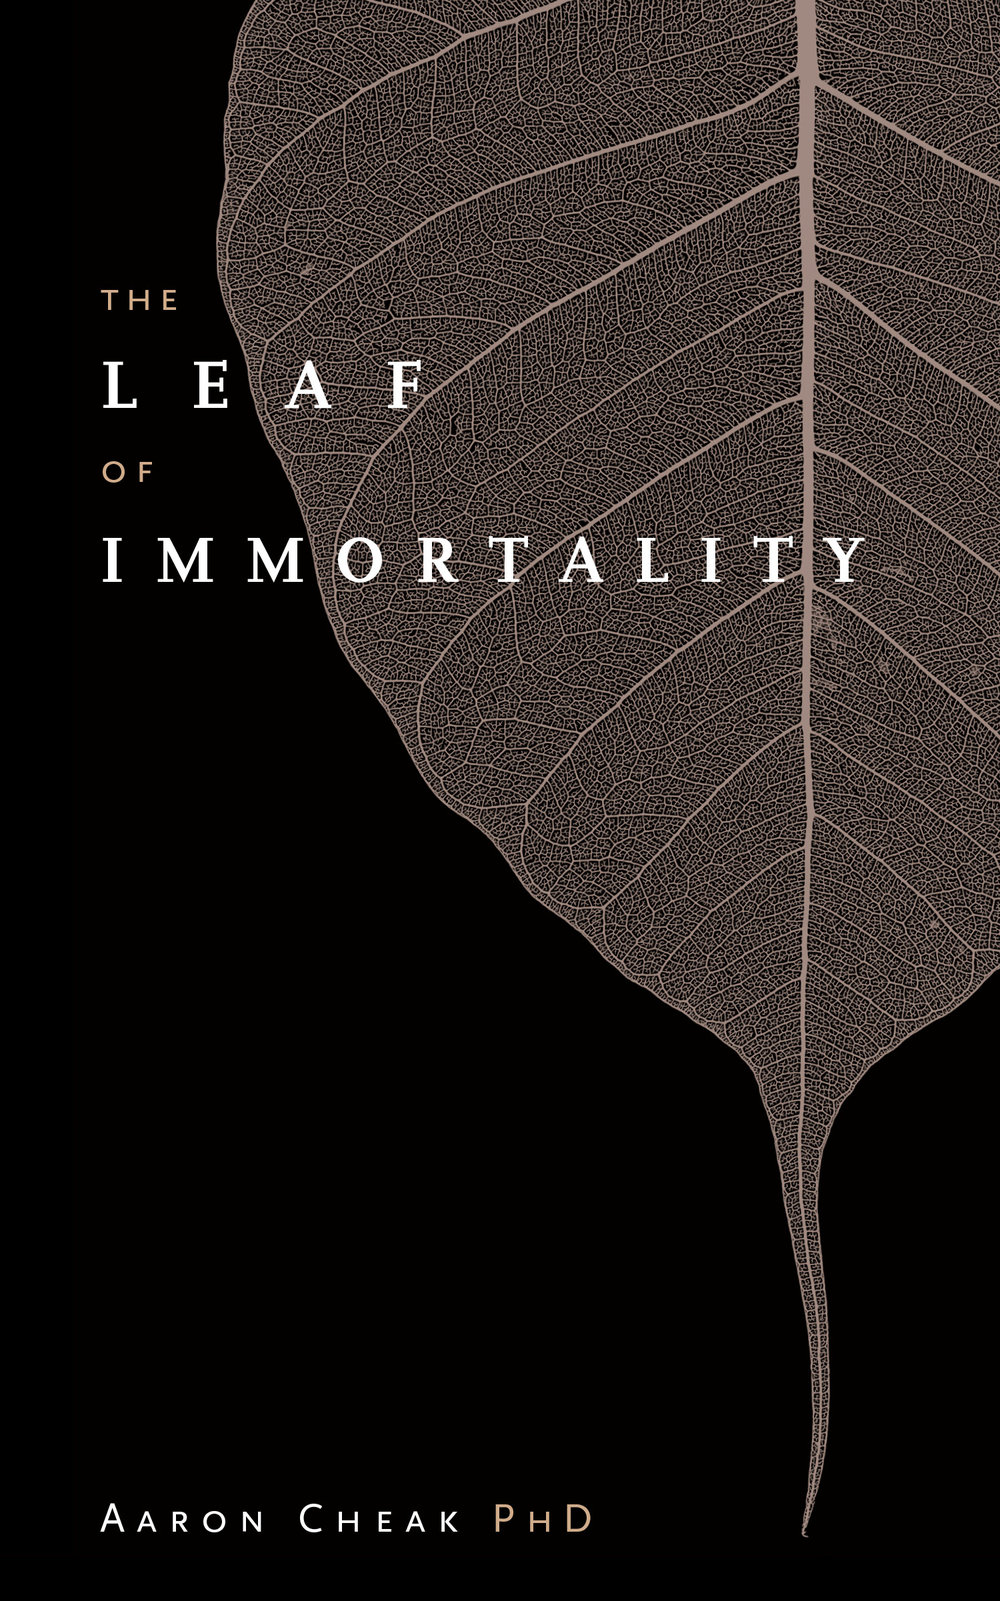 LEAF Full size cover.jpg